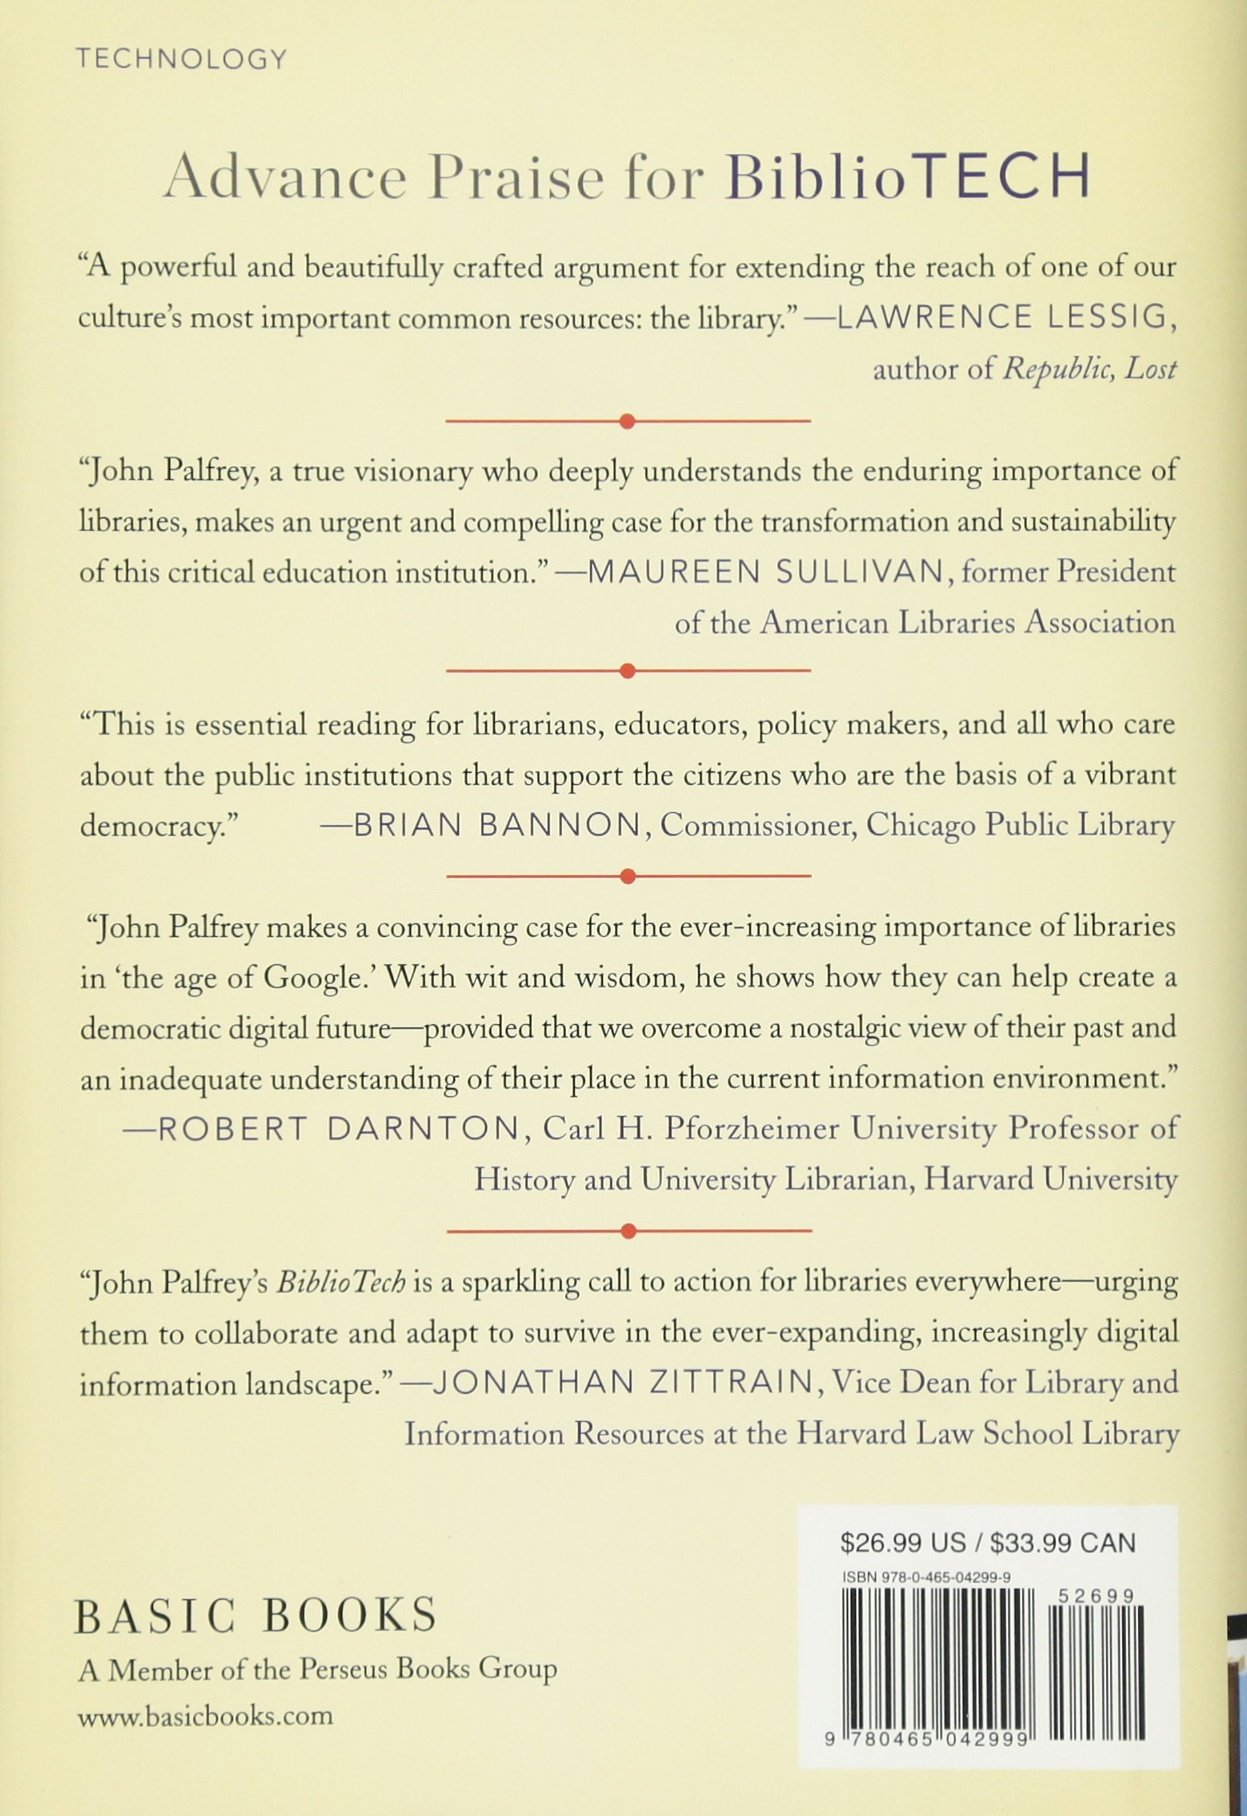 Amazon.com: BiblioTech: Why Libraries Matter More Than Ever in the Age of  Google (0884303821162): John Palfrey: Books